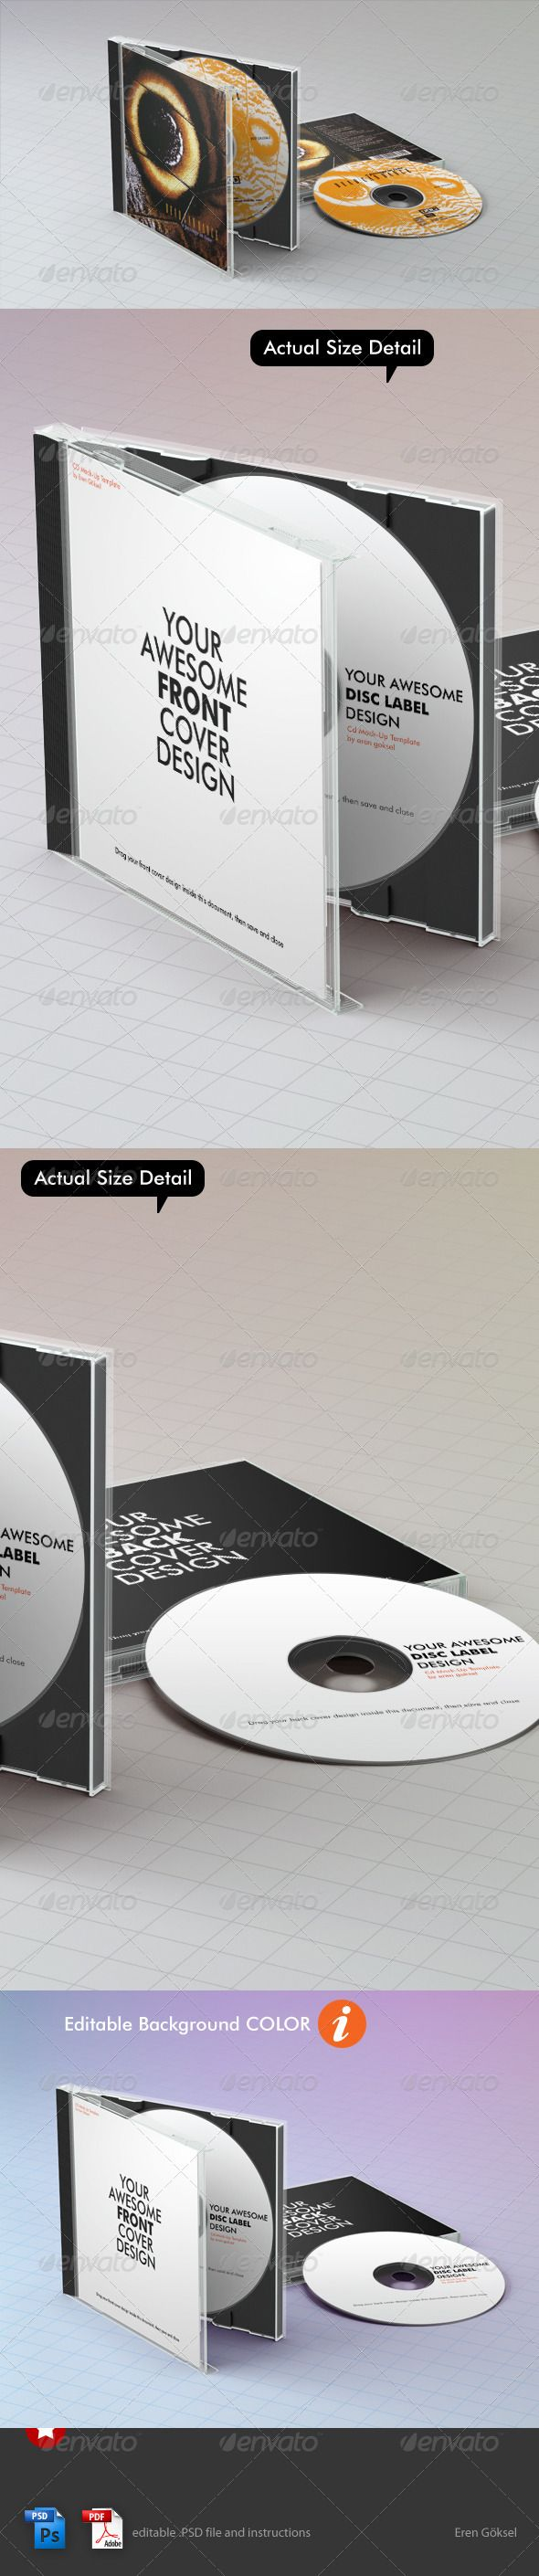 Realistic CD Mock-Up Template 2